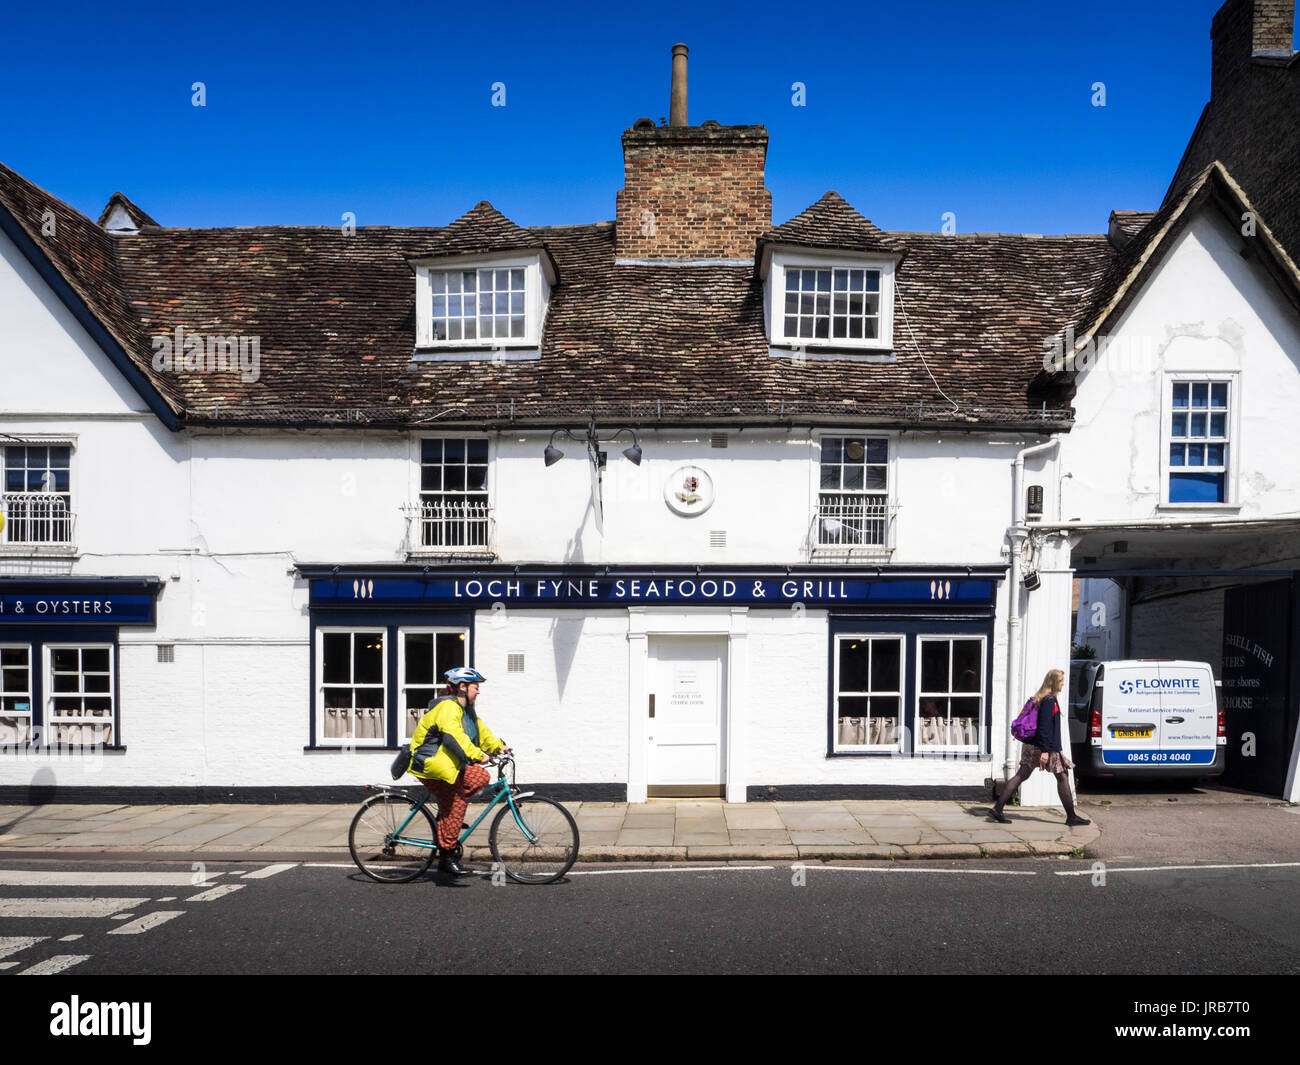 Loch Fyne restaurant  - a cyclist passes the Loch Fyne restaurant in Cambridge UK. Part of an upmarket chain that specialises in fresh seafood dishes. - Stock Image